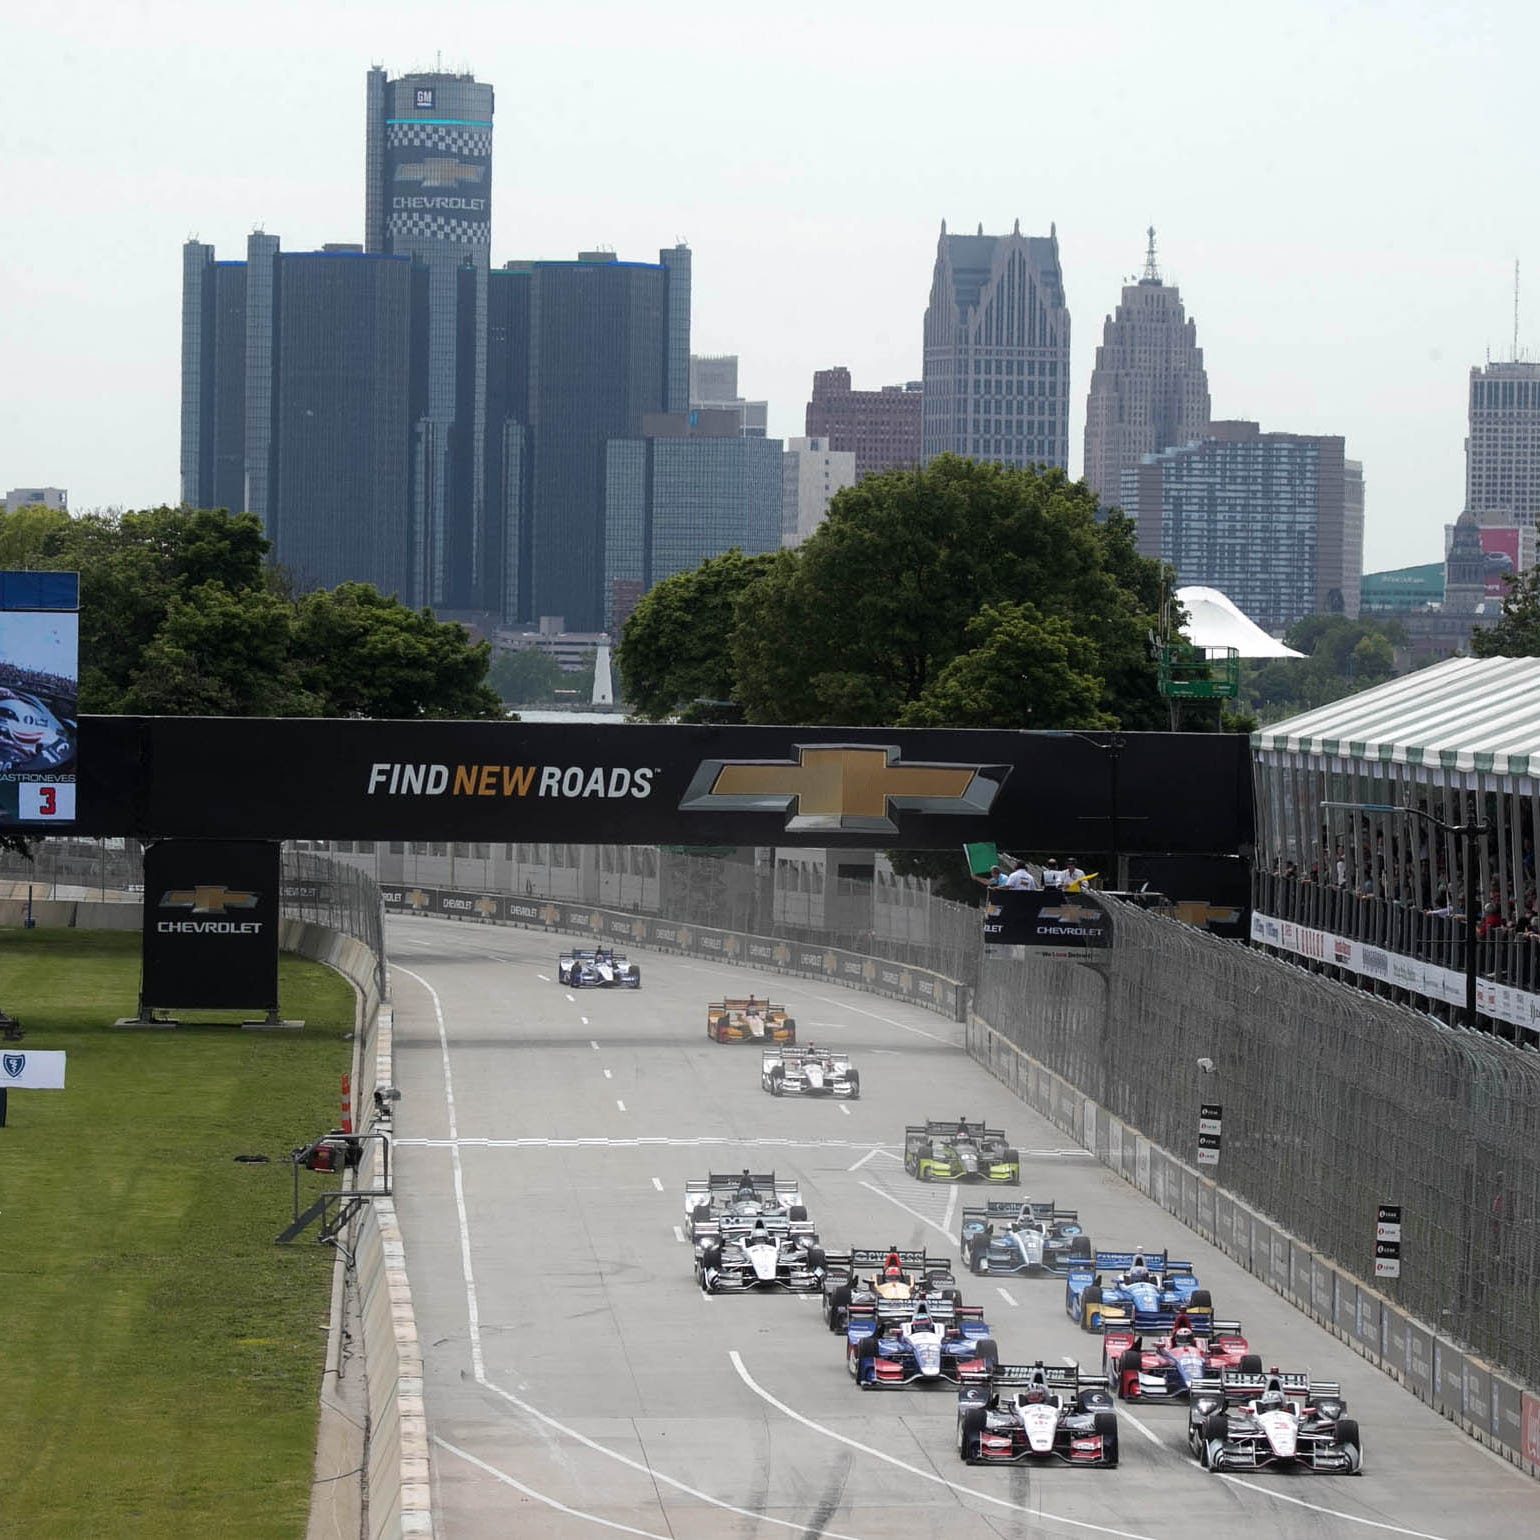 2019 Chevrolet Detroit Grand Prix schedule: What to know for IndyCar's visit to Belle Isle